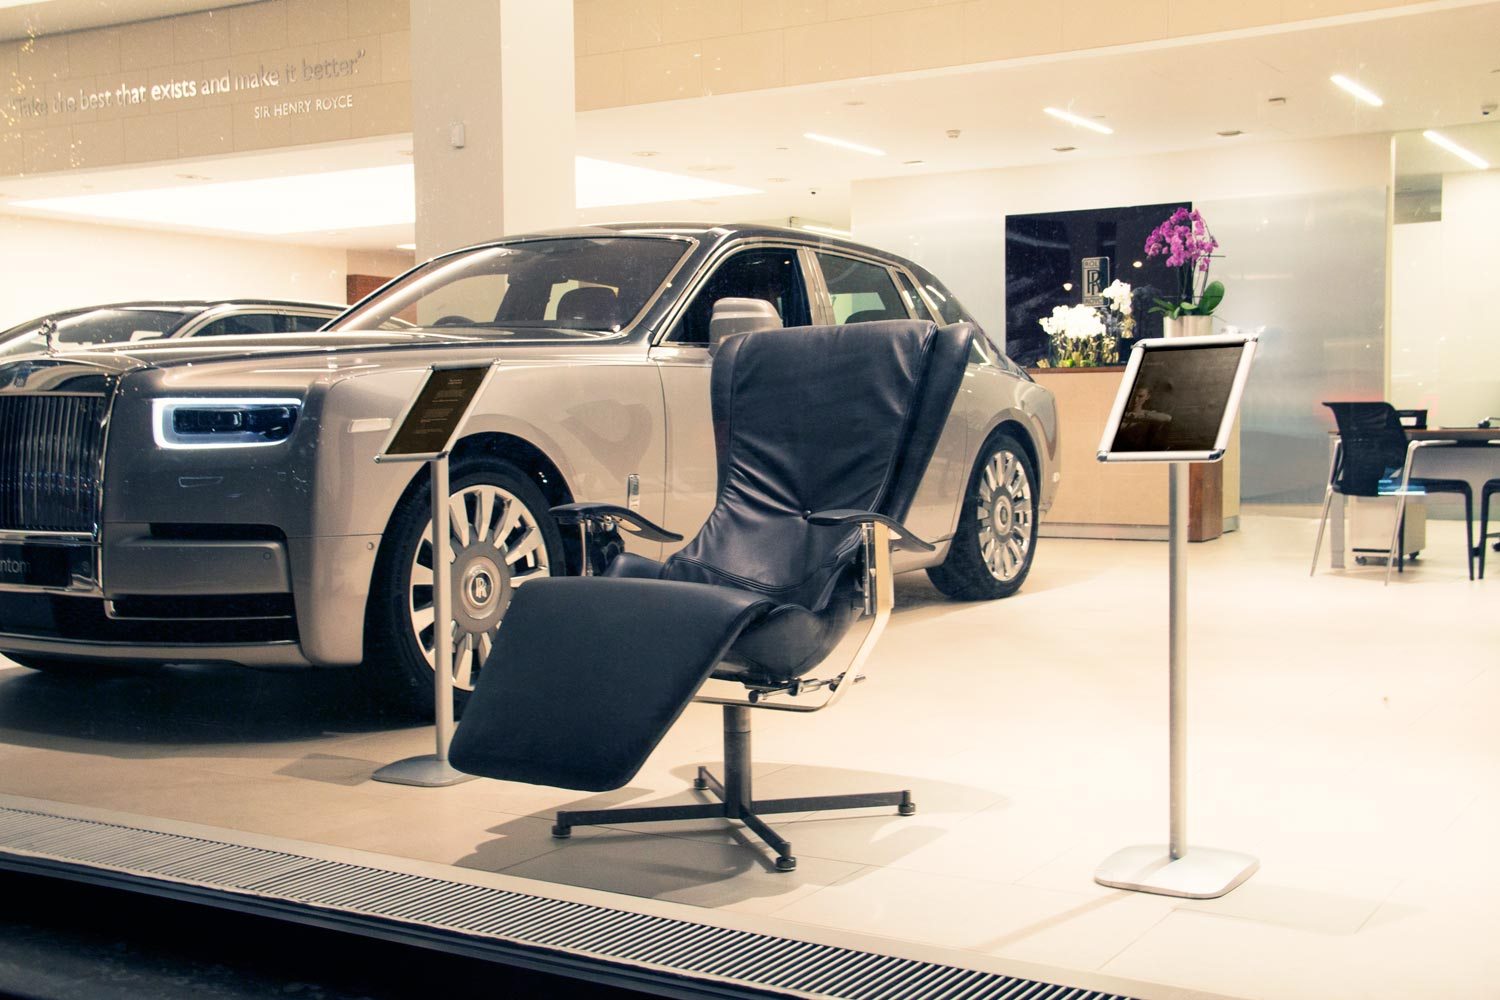 Elysium-R, the Roll-Royce of Chairs Comes to the Heart of London 1